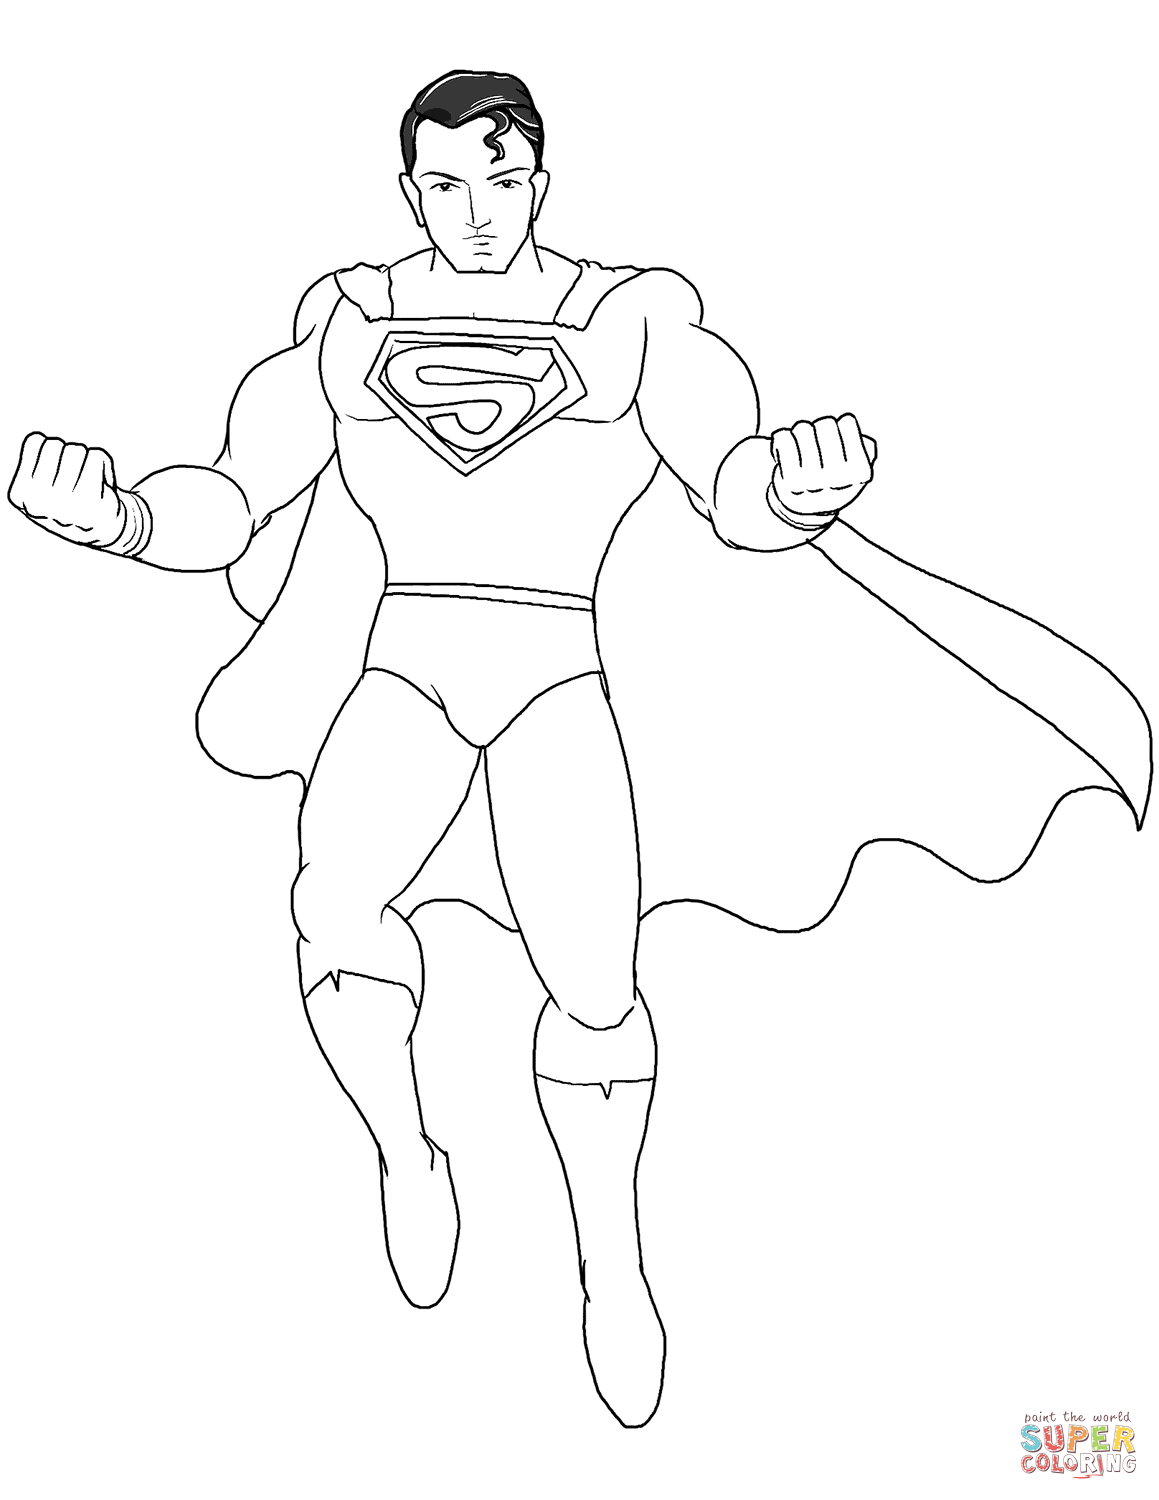 superman cartoon pictures for colouring superman coloring pages fotolipcom rich image and wallpaper superman pictures for cartoon colouring